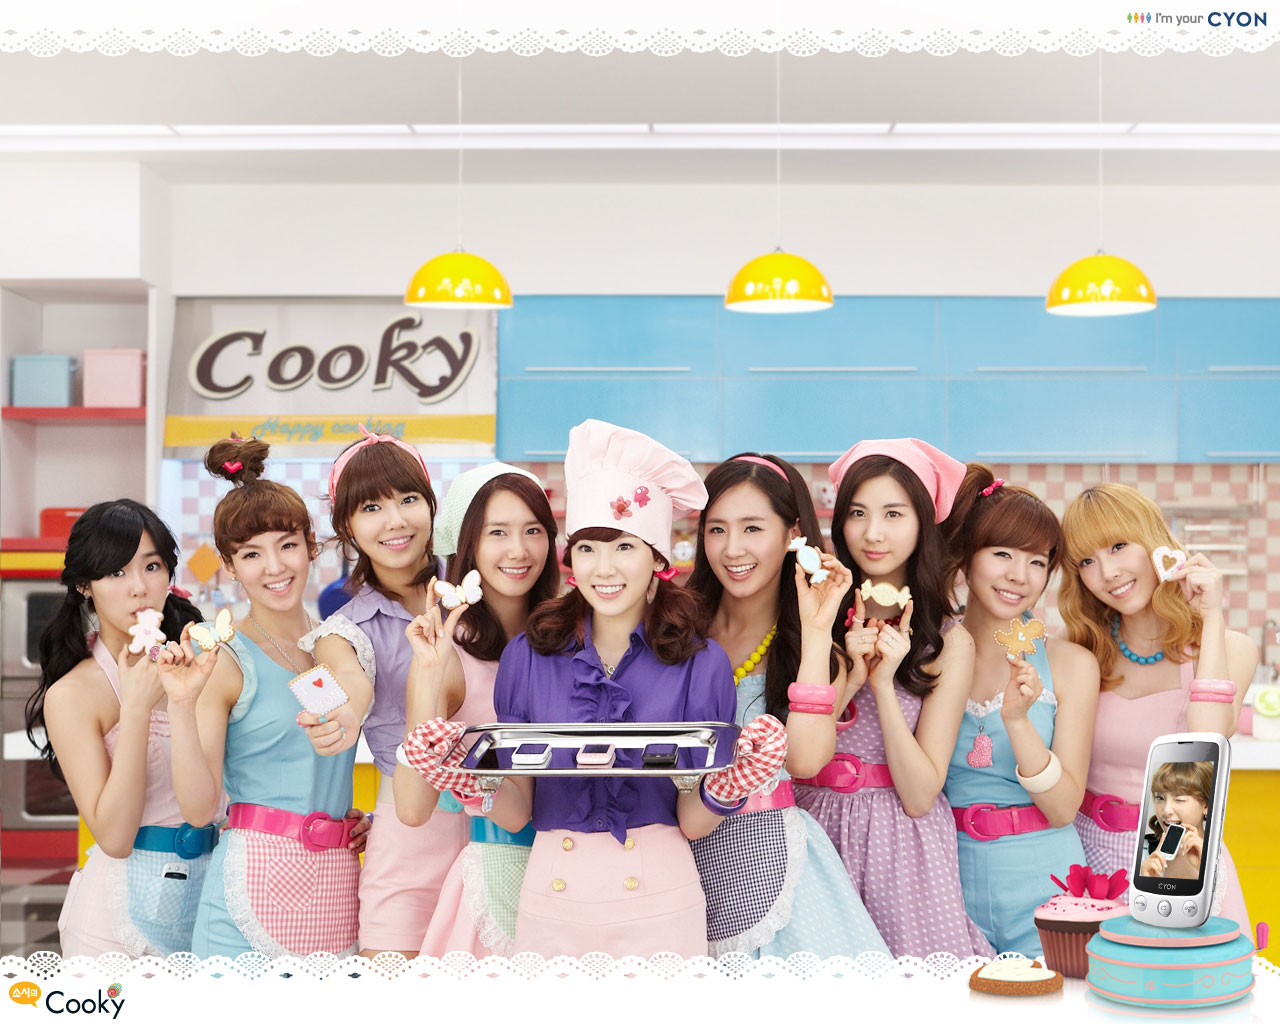 SNSD LG Cyon Cooky wallpapers